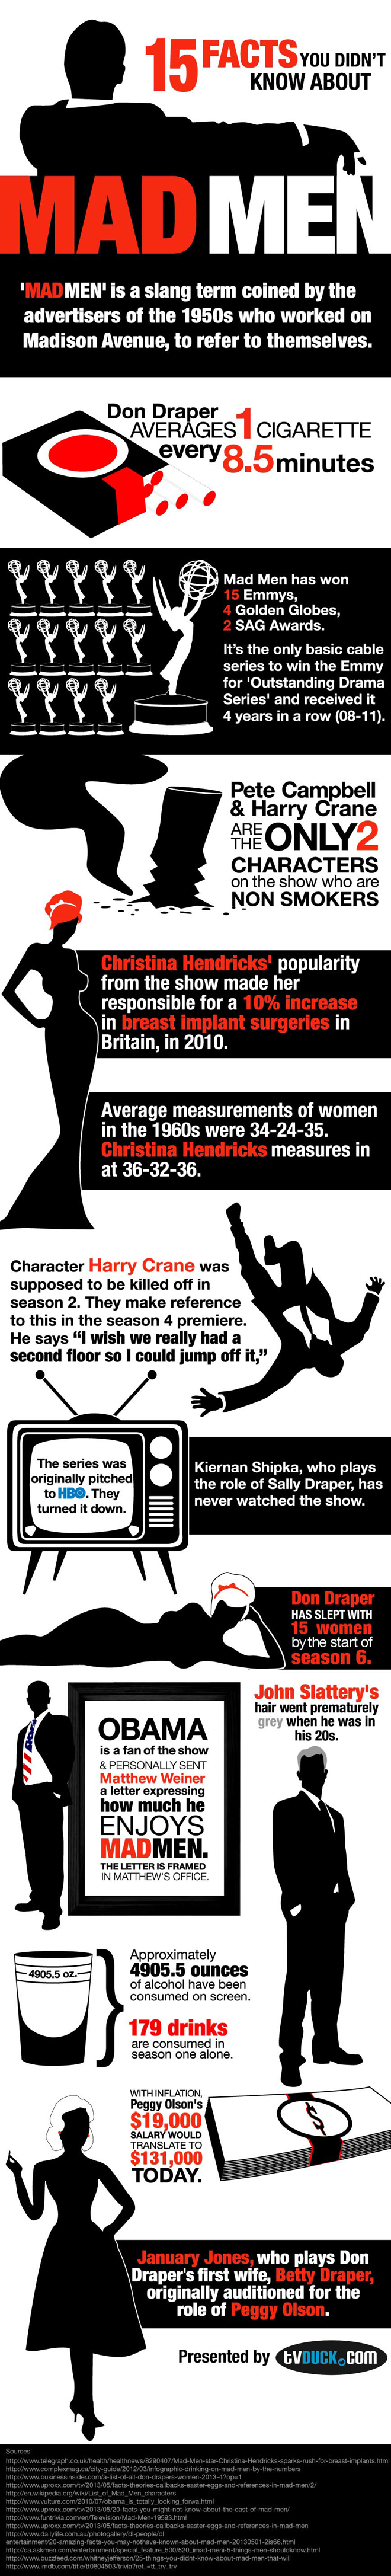 15 fun facts about MadMen (only 1 mistake Harry Crane is a smoker too)